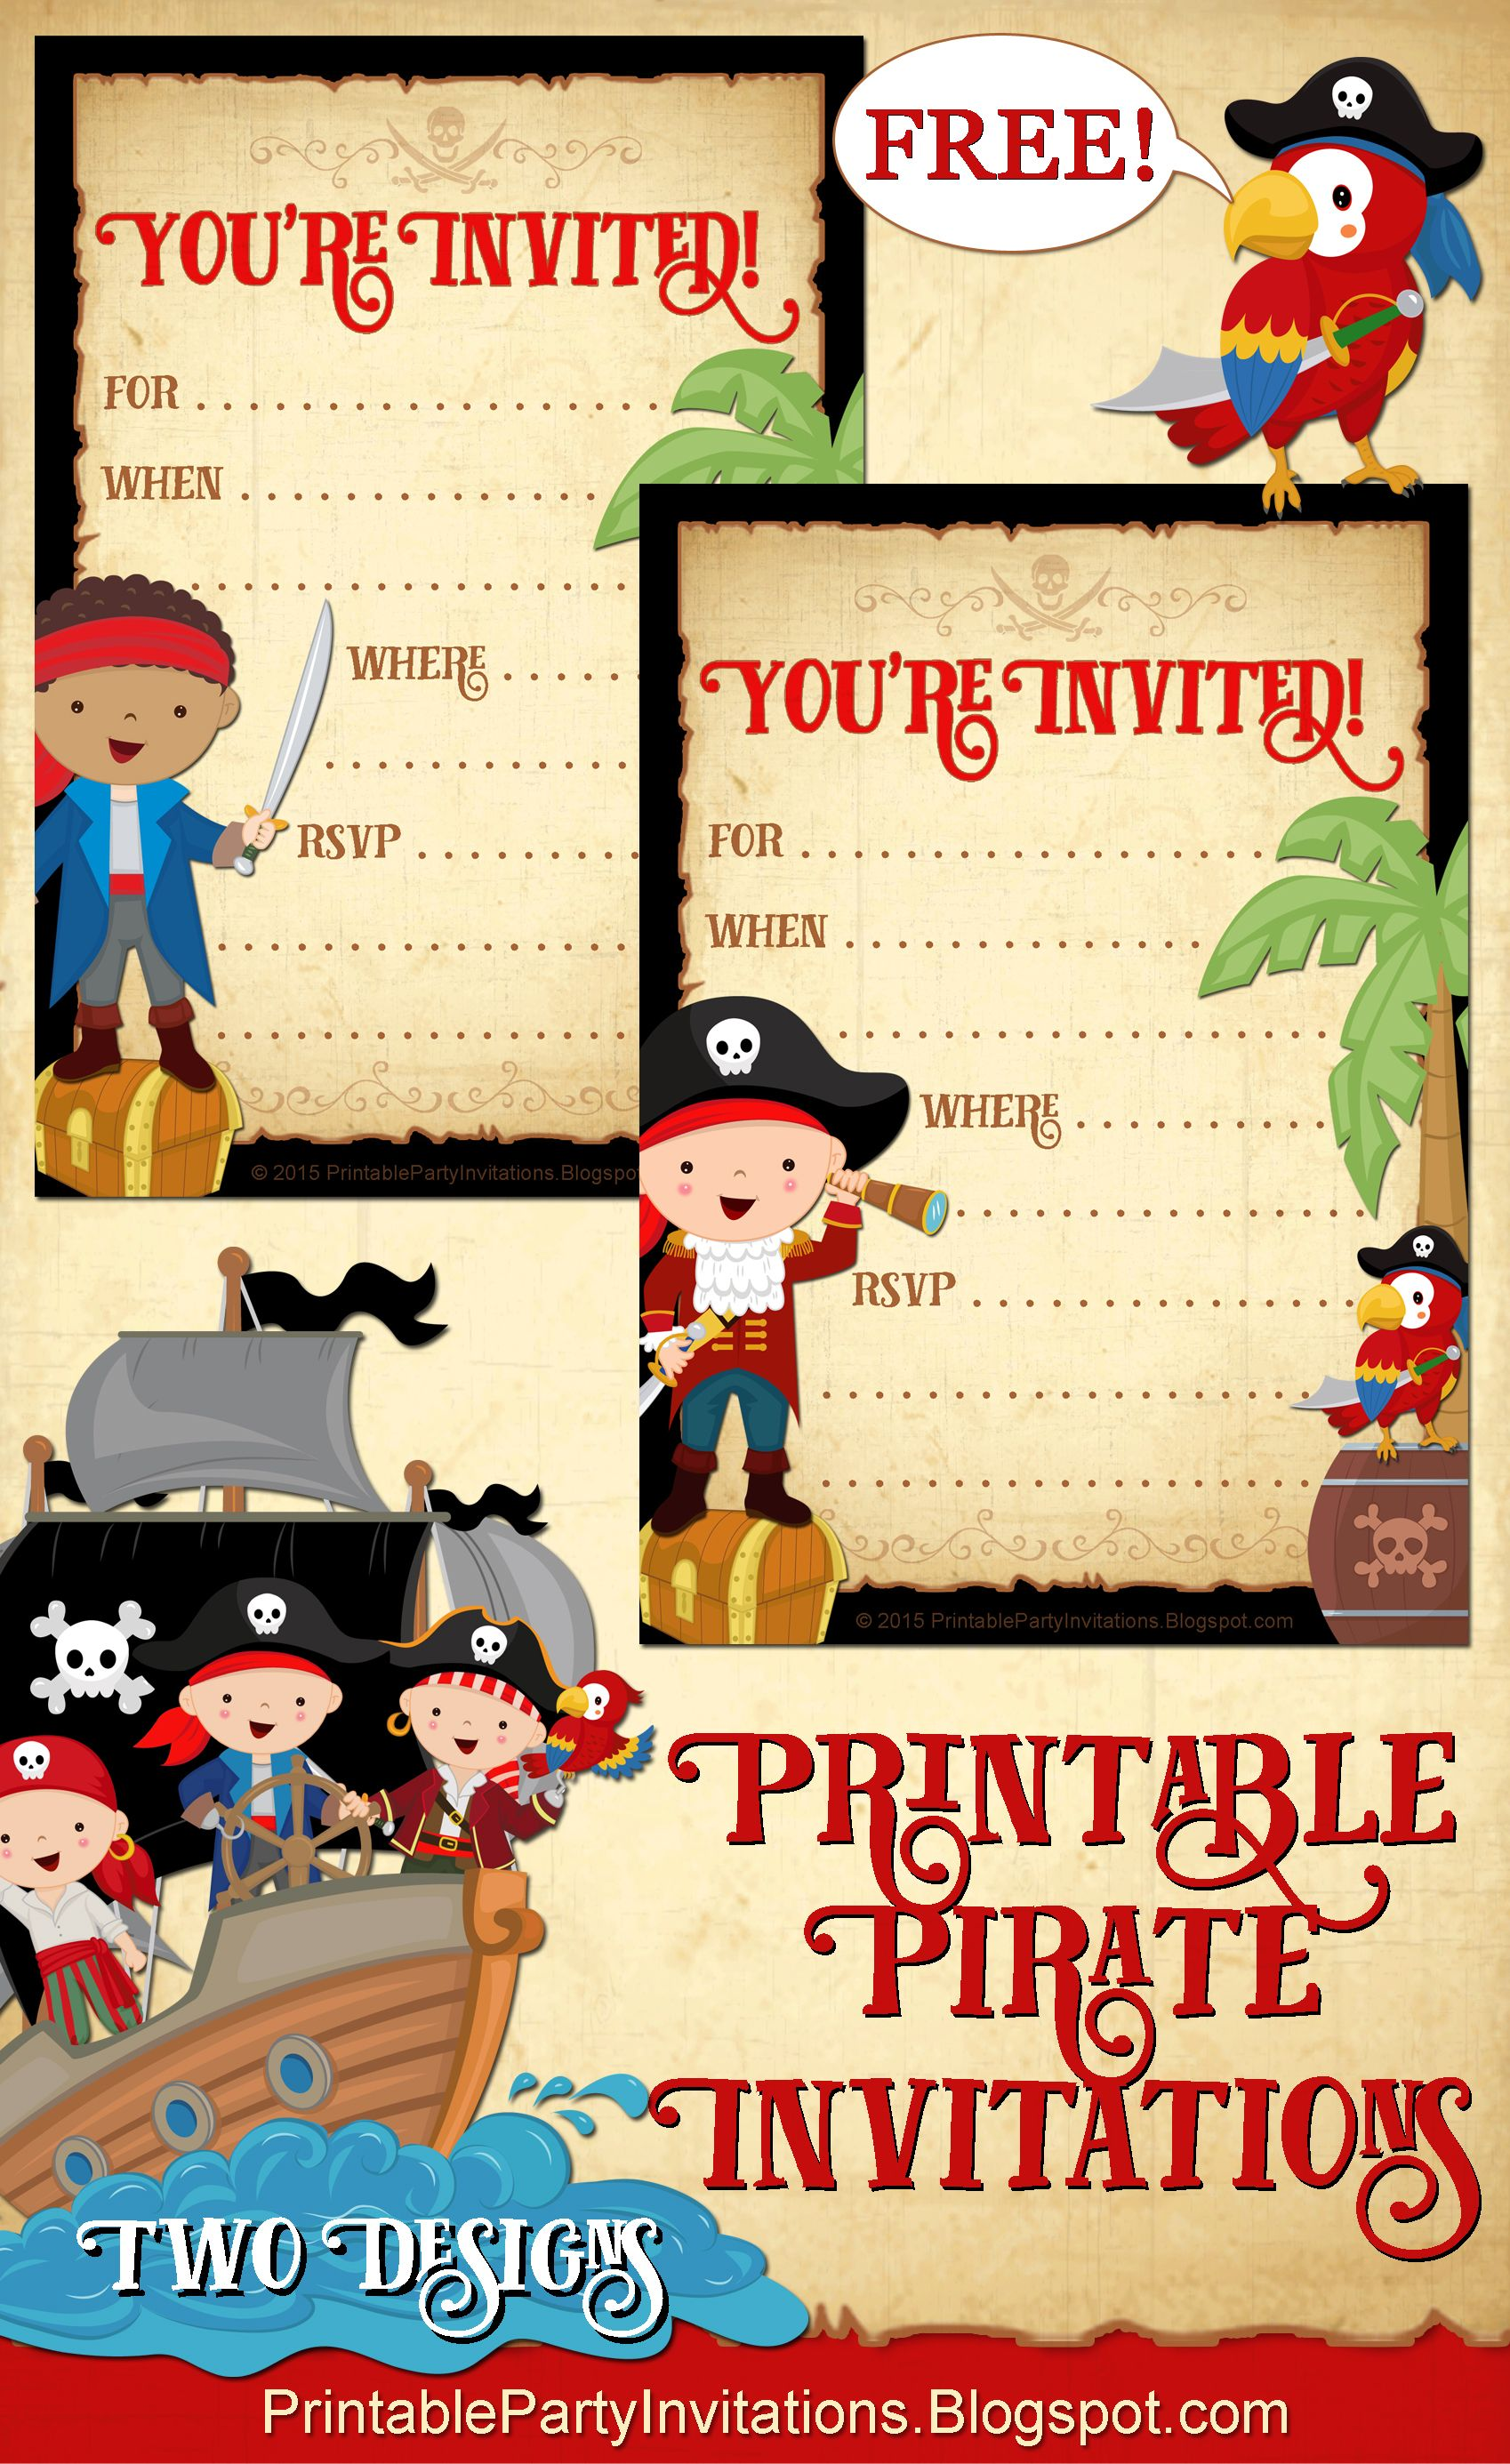 FREE Printable Pirate Party Invitations 2 Designs – Free Pirate Party Invitations